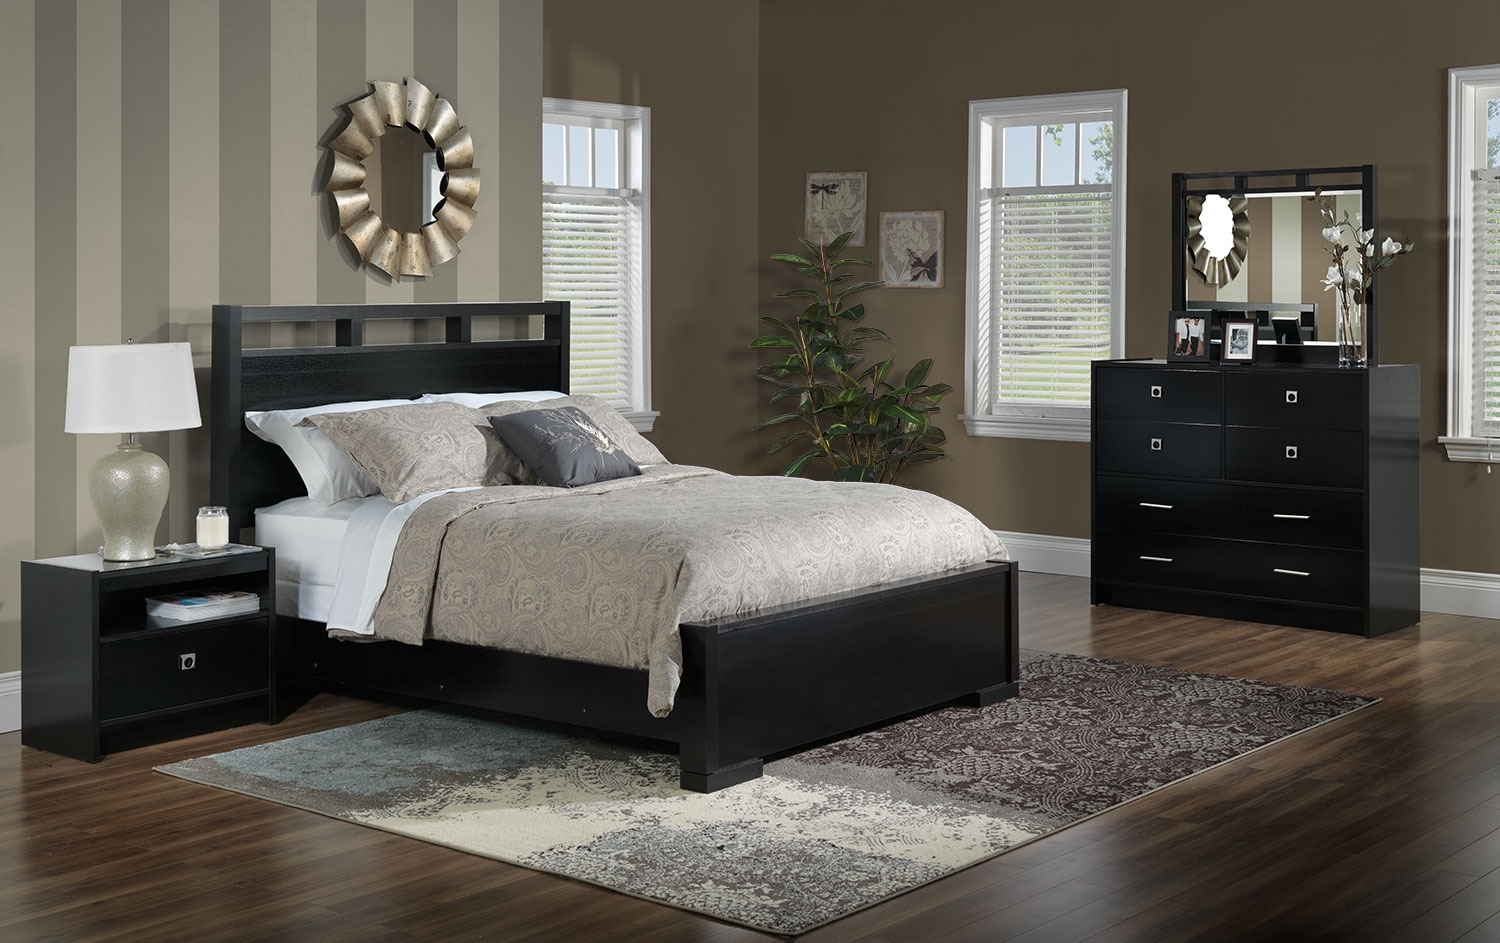 Altissa 5 piece queen bedroom set espresso leon 39 s for Bedroom furniture sets queen